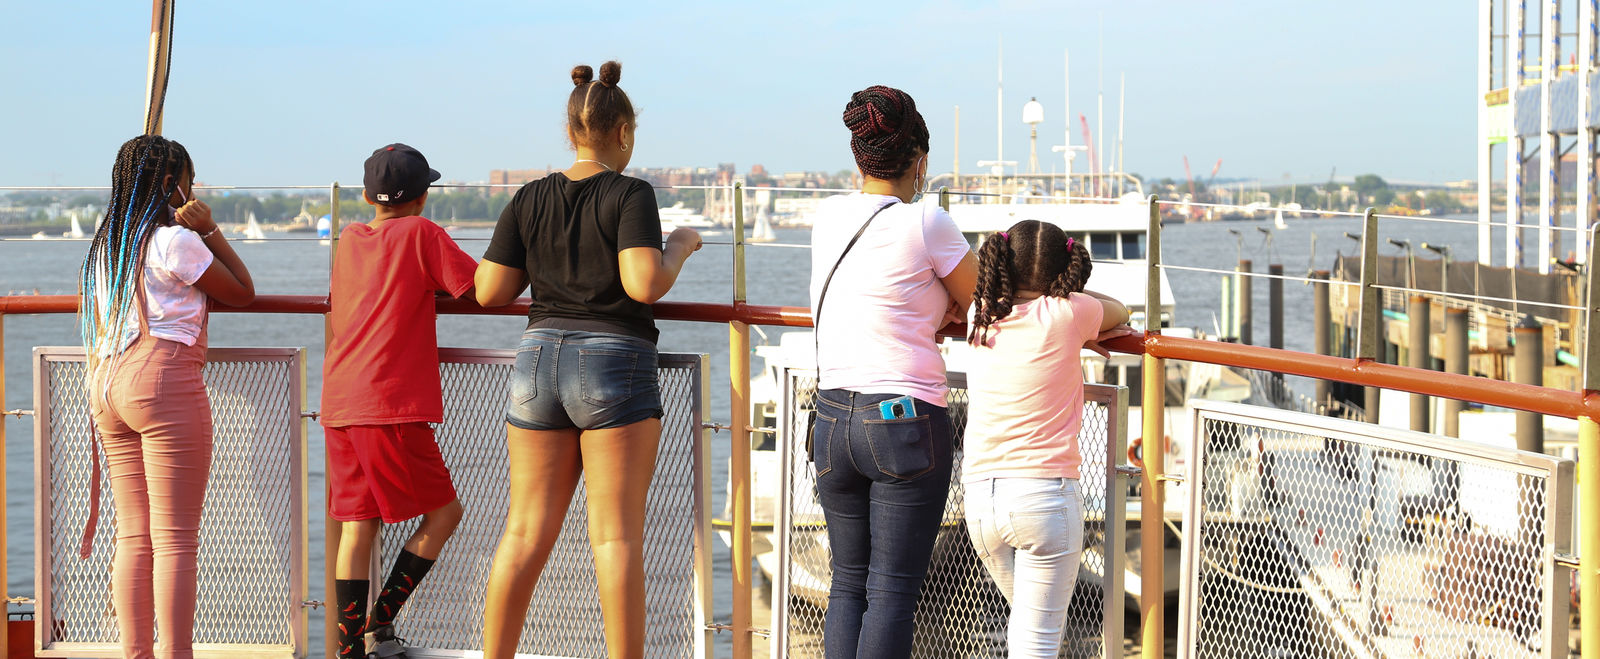 Young people look out at the Boston skyline from a boat.